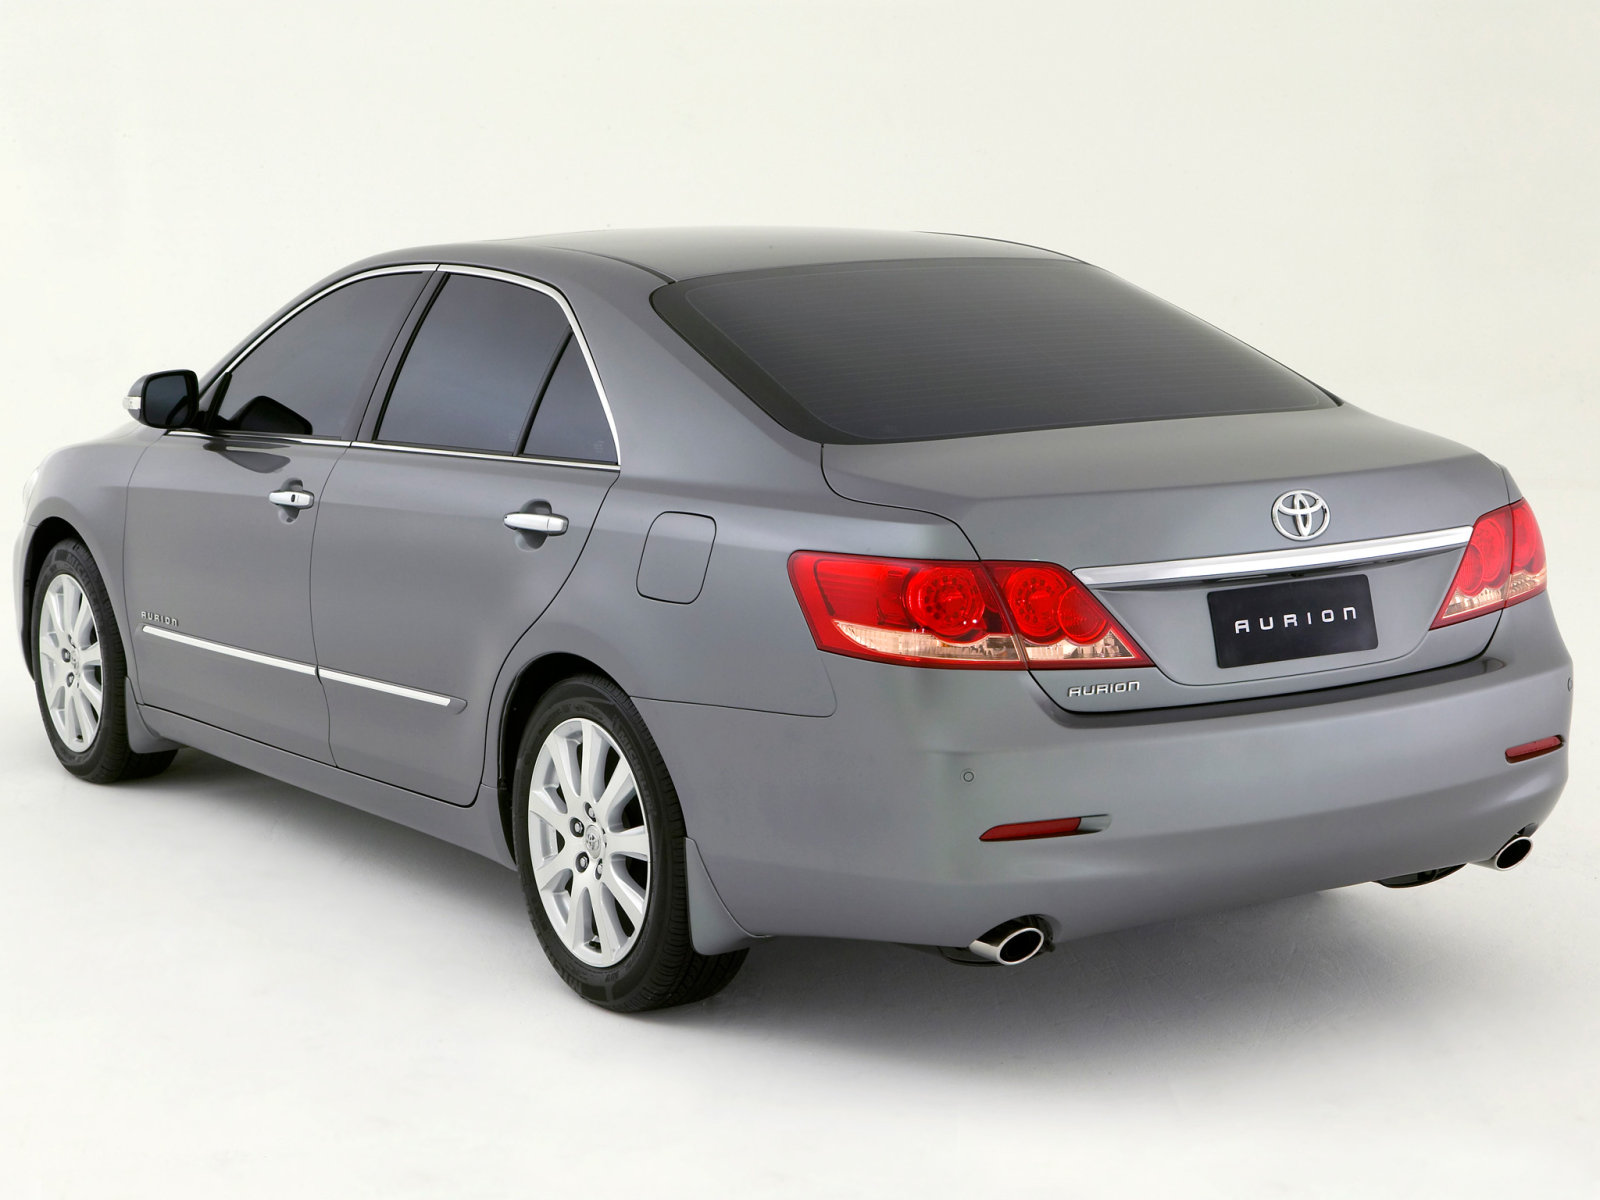 2009 Toyota Aurion photo - 2